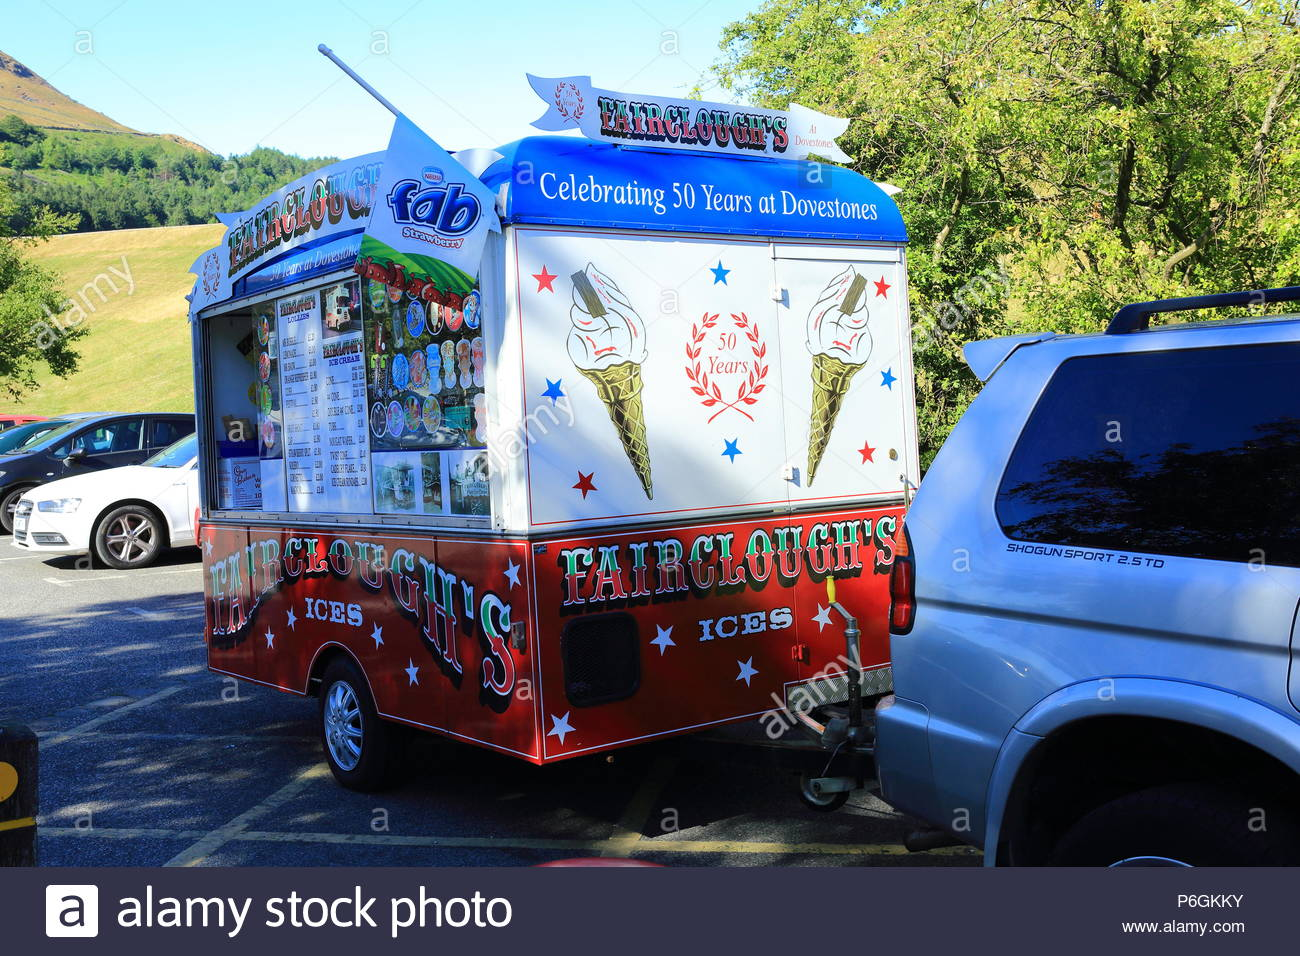 A Faircloughs Ice Cream Van At Dove Stone Reservoir, Peak District National Park, Greenfield, Oldham England Summer July 2018 - Stock Image